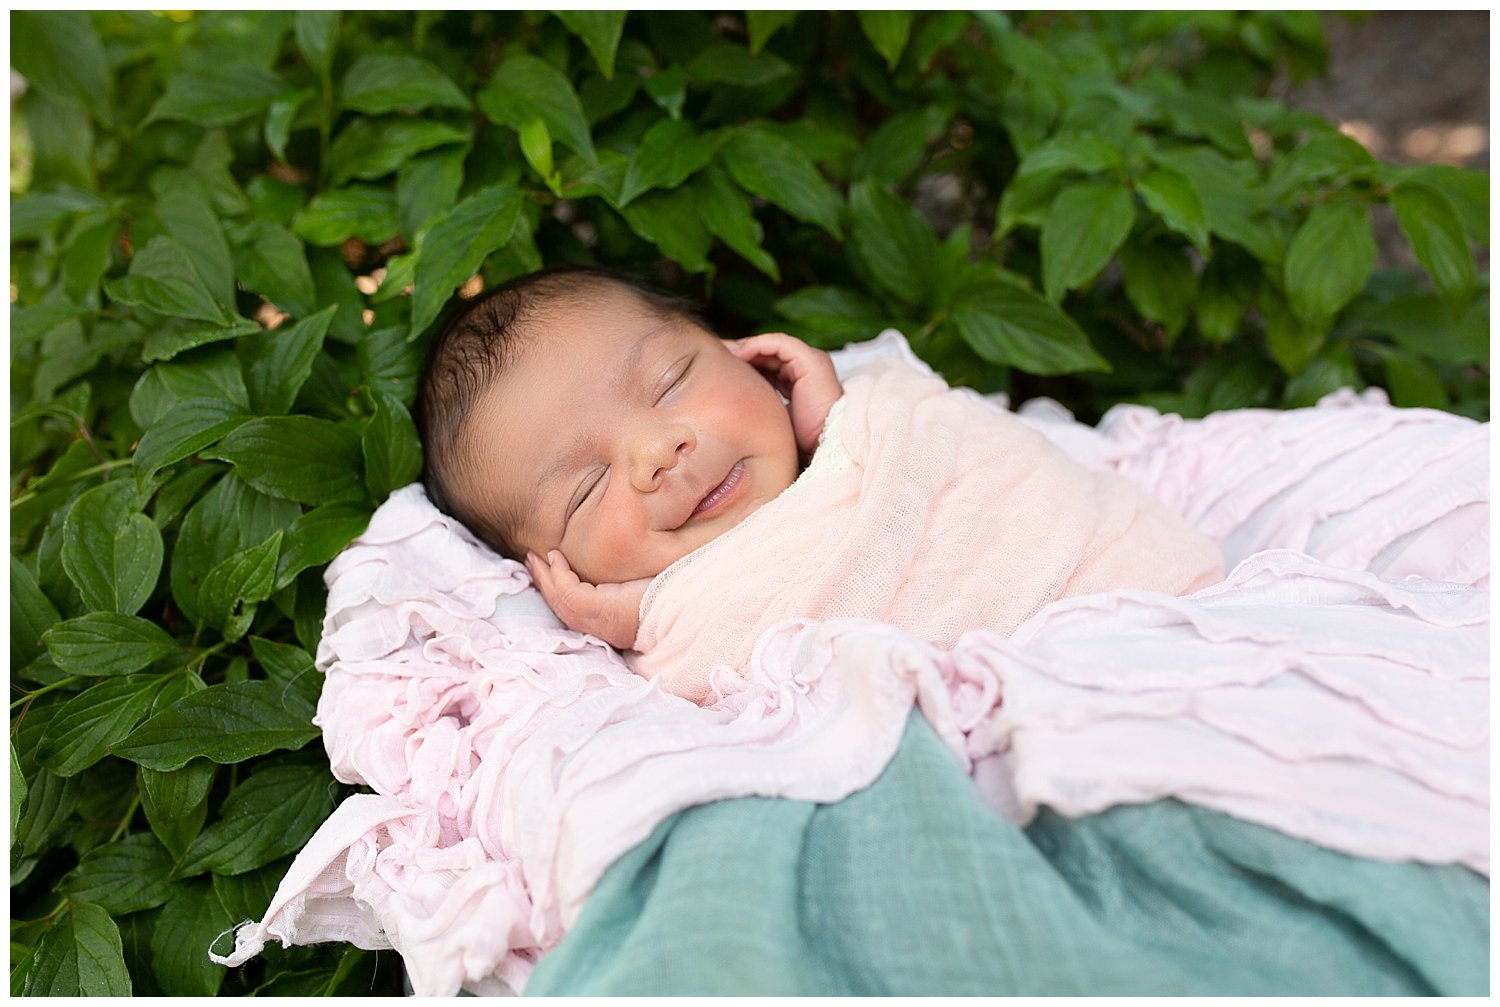 All smiles in her sleep too! I don't think it gets any cuter than this?!